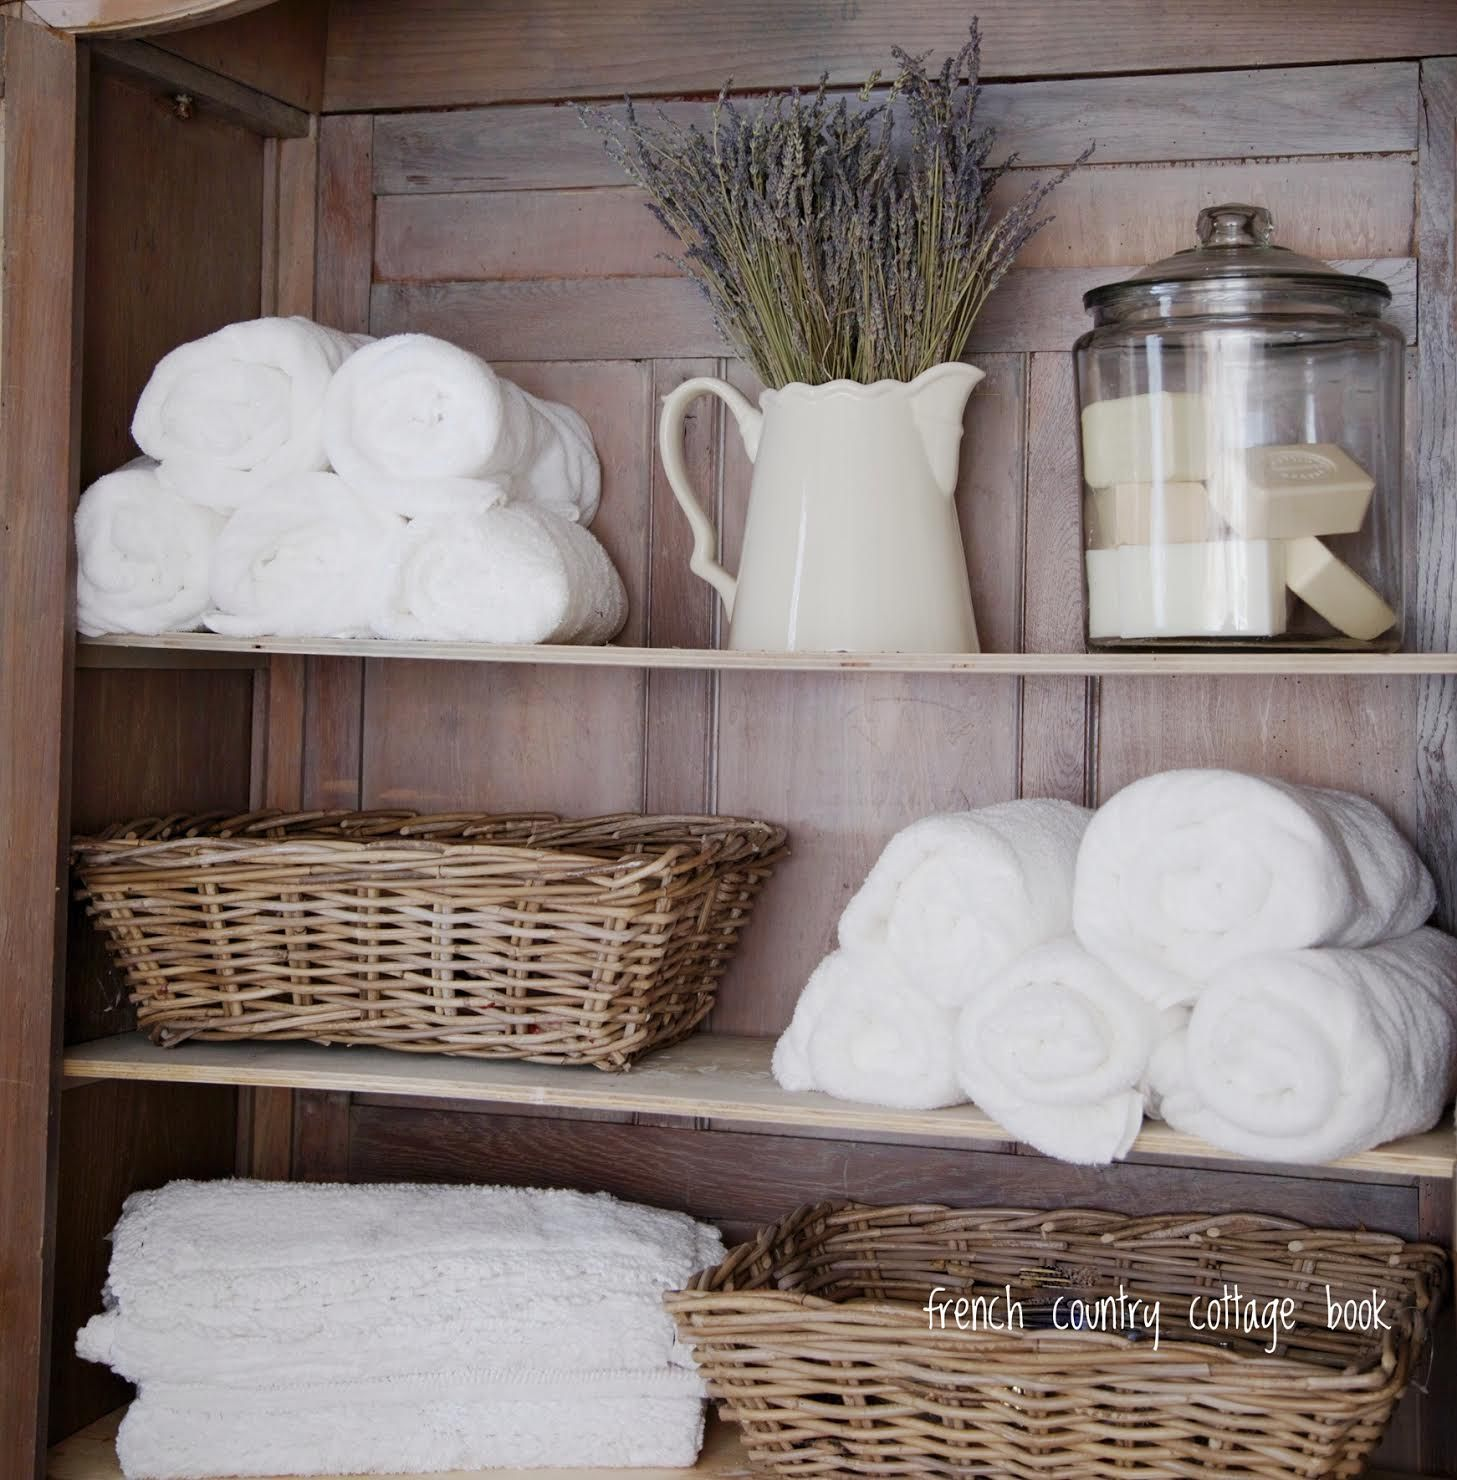 5 minute decorating- Five ways to style your bathroom for summer guests